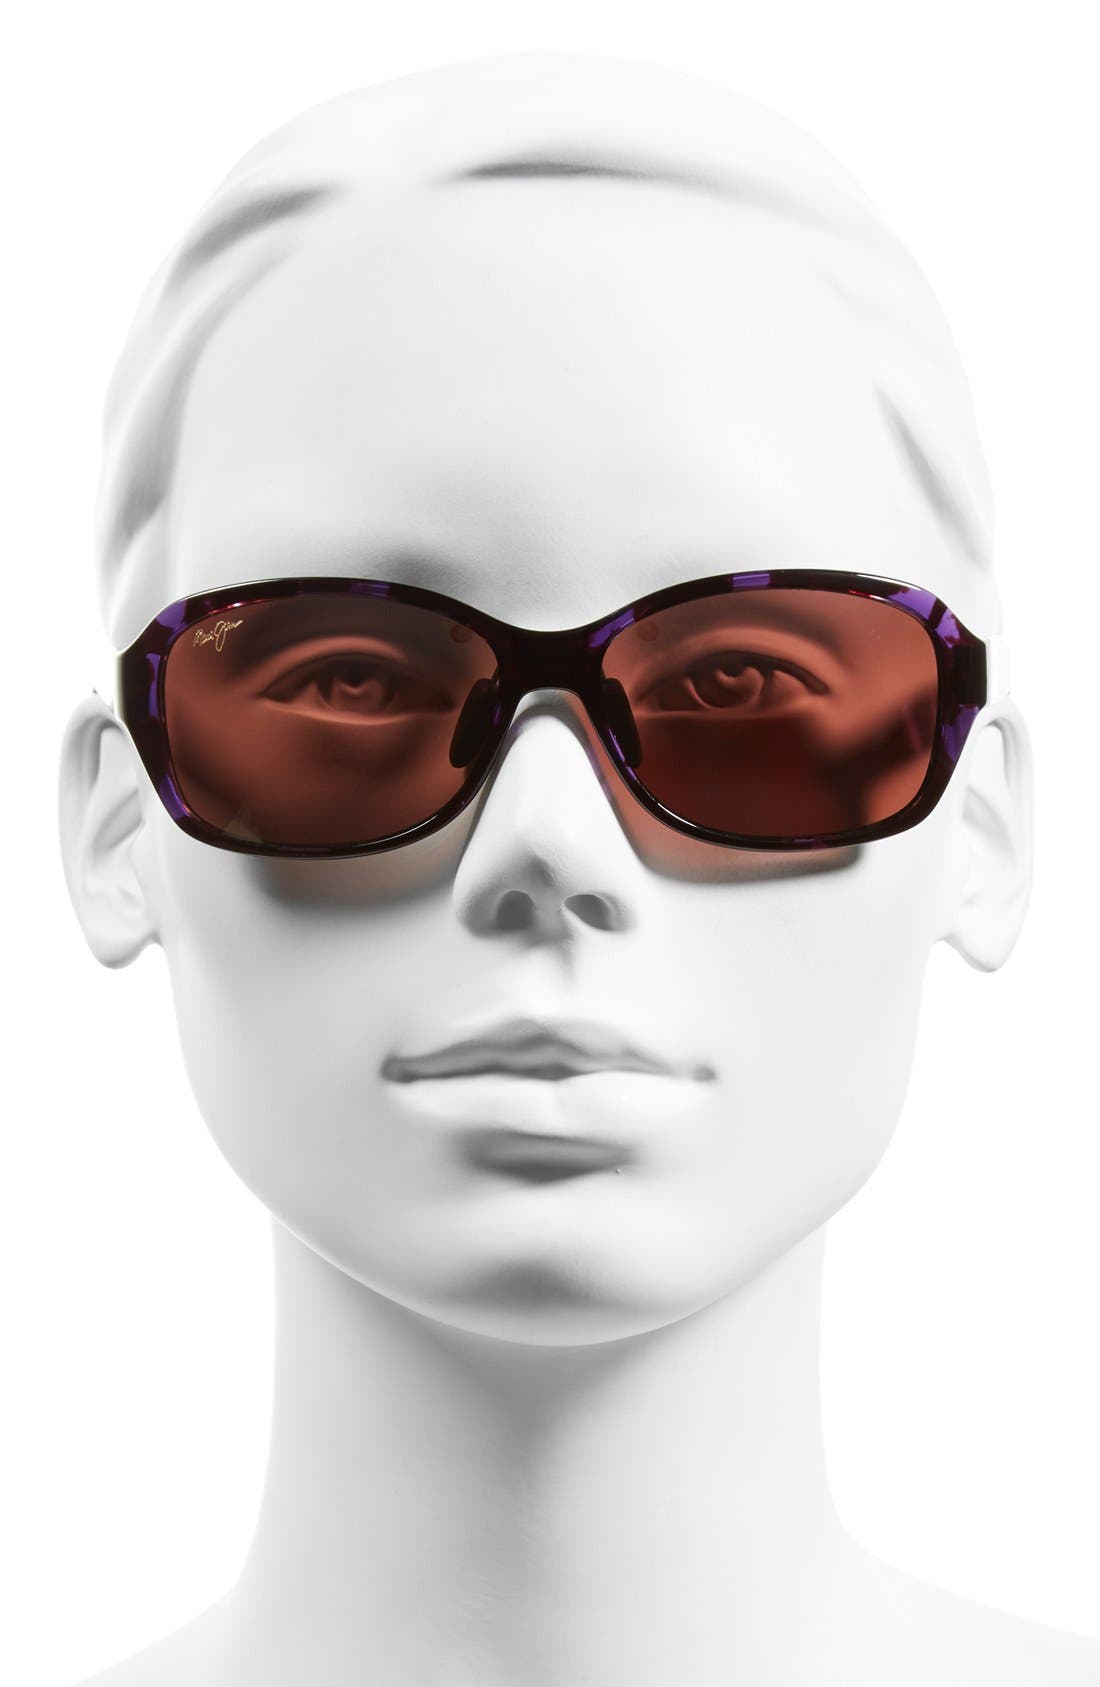 Koki Beach 56mm PolarizedPlus2<sup>®</sup> Sunglasses,                             Alternate thumbnail 2, color,                             Purple Tortoise/ Maui Rose